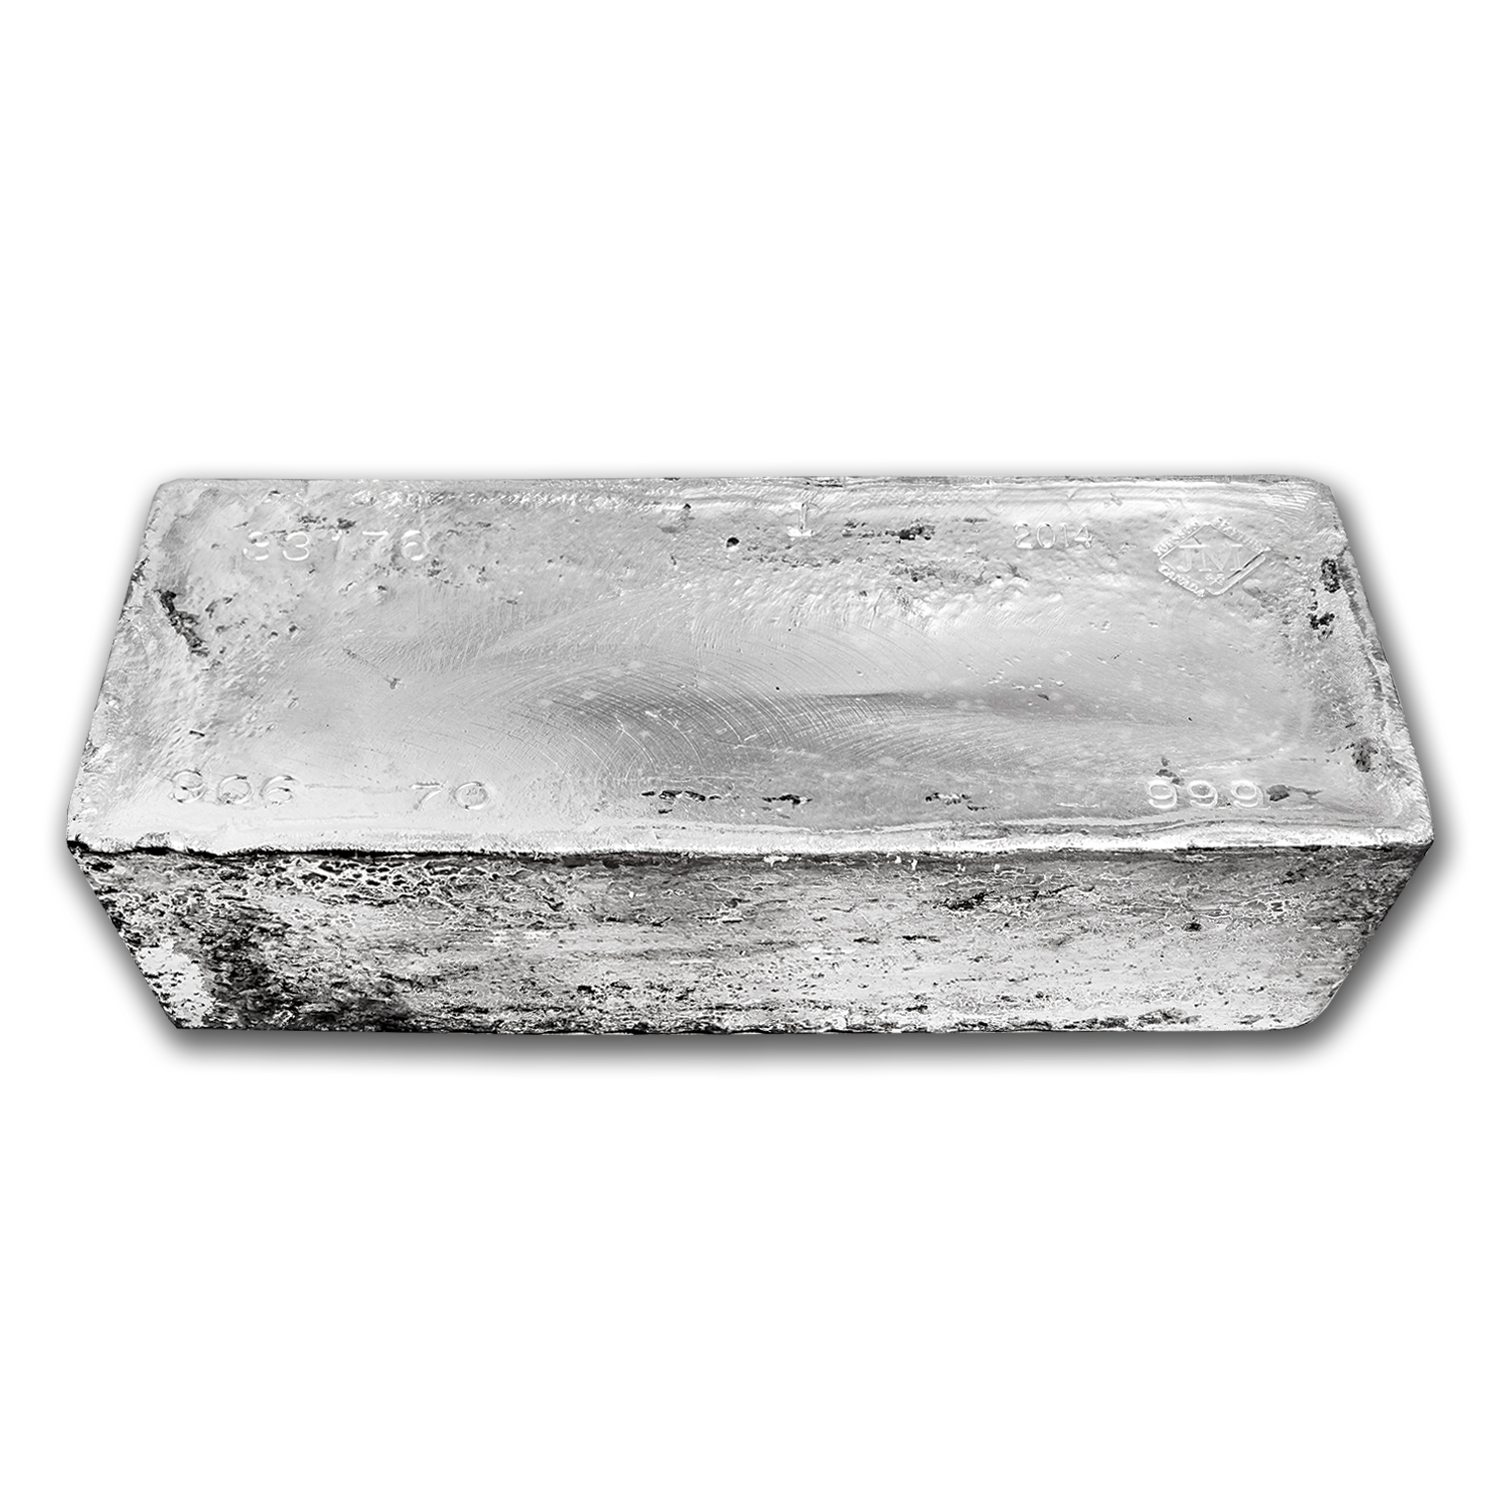 942.70 oz Silver Bar - Johnson Matthey